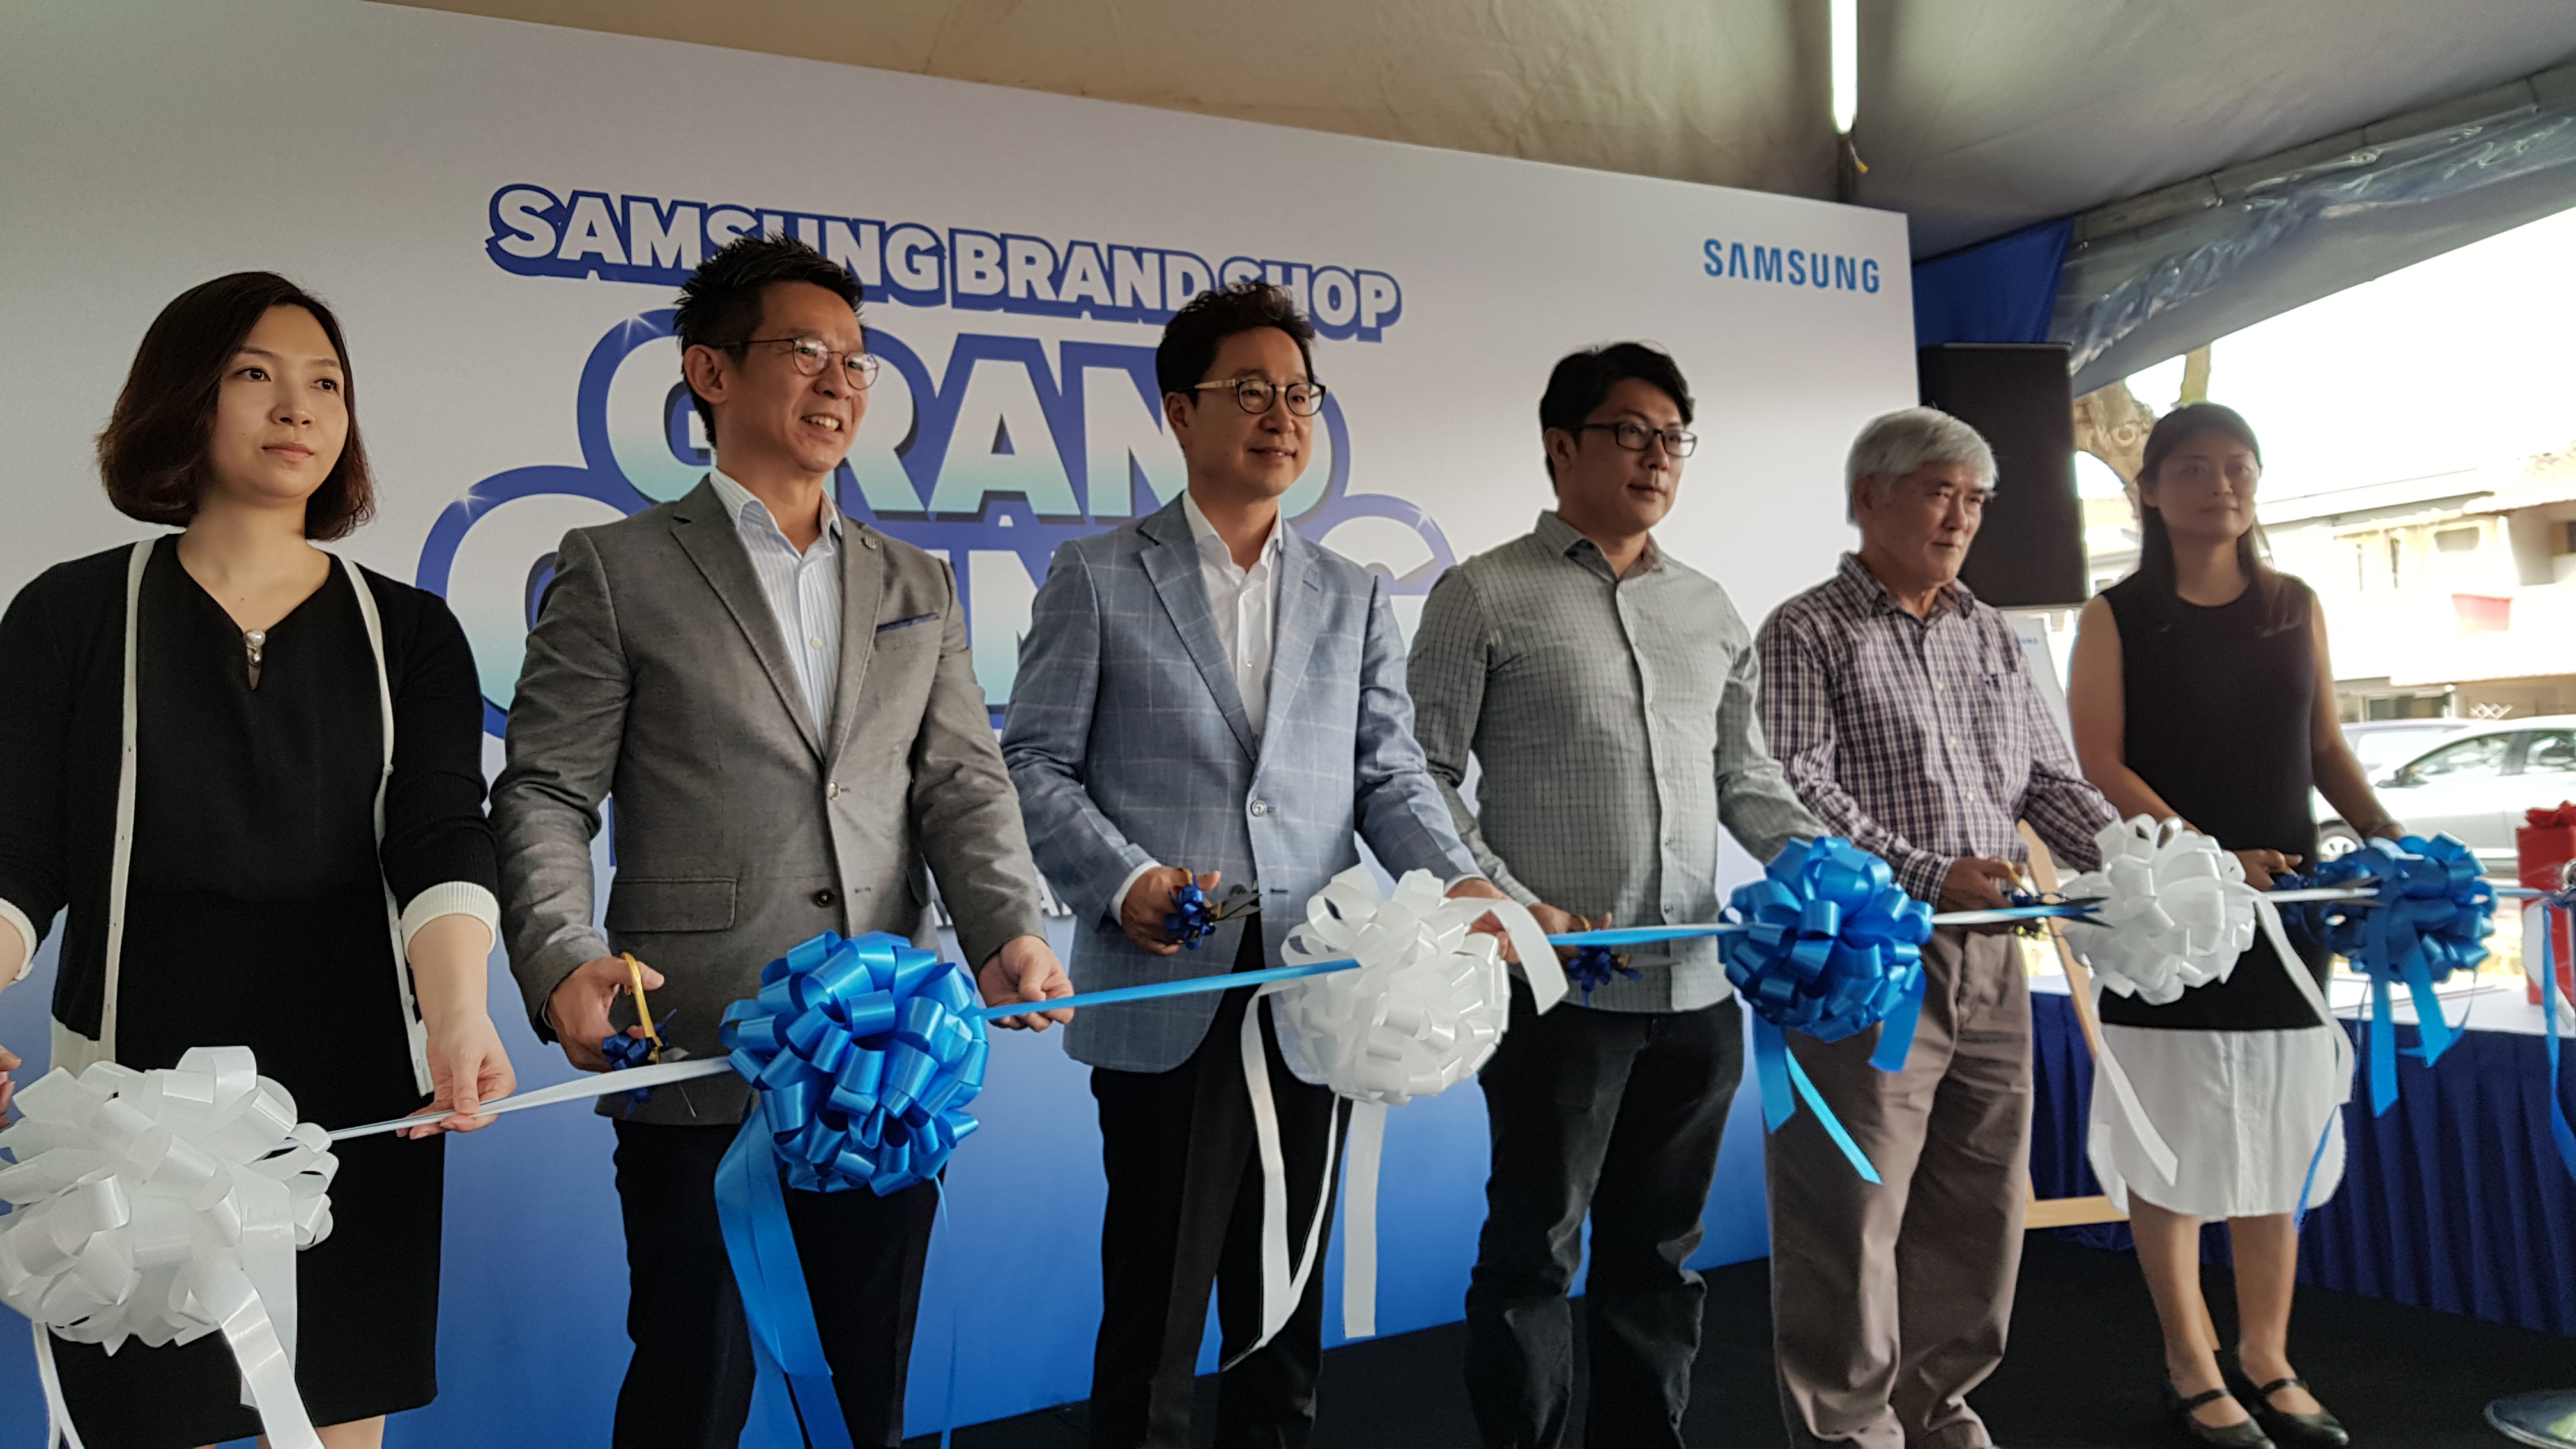 Samsung Opens Brand Shop in SS2 to Serve PJ Residents